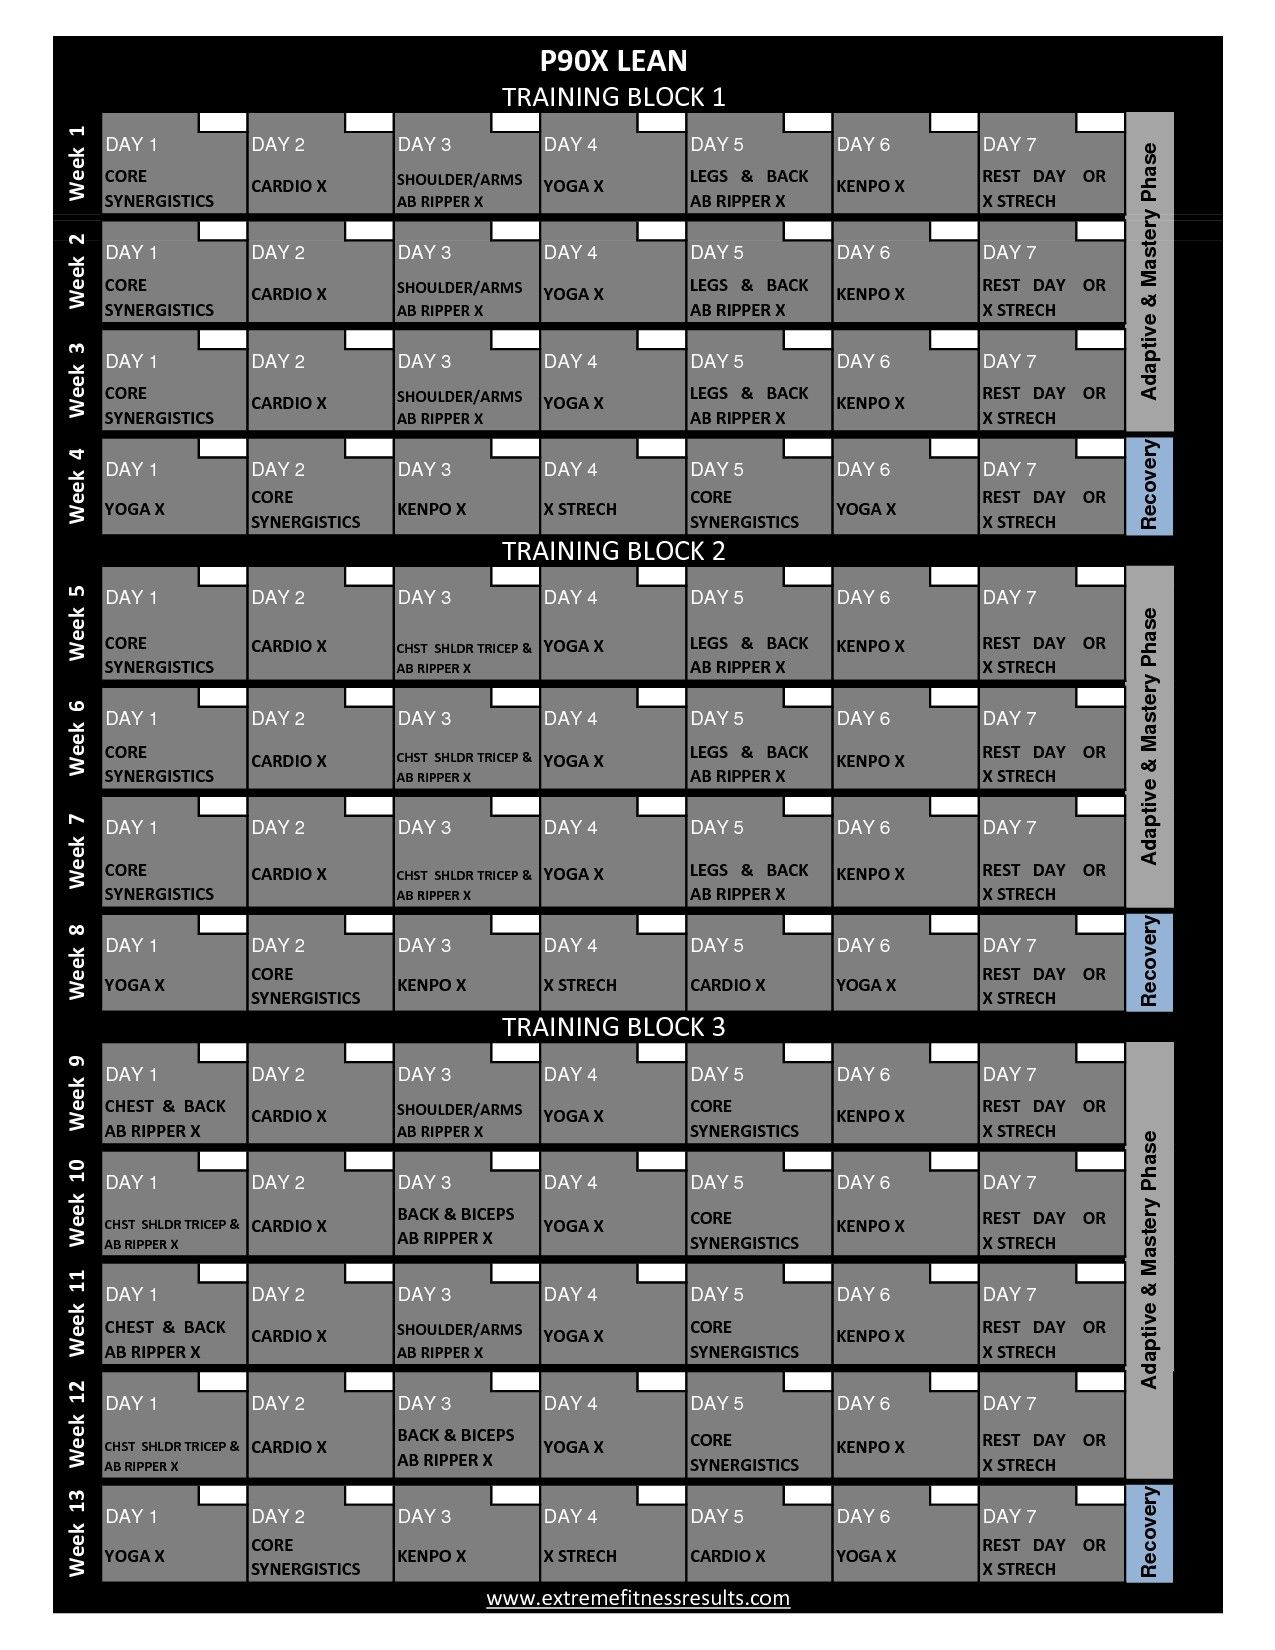 P90x Workout Calendar Printable P90x Classic Schedule